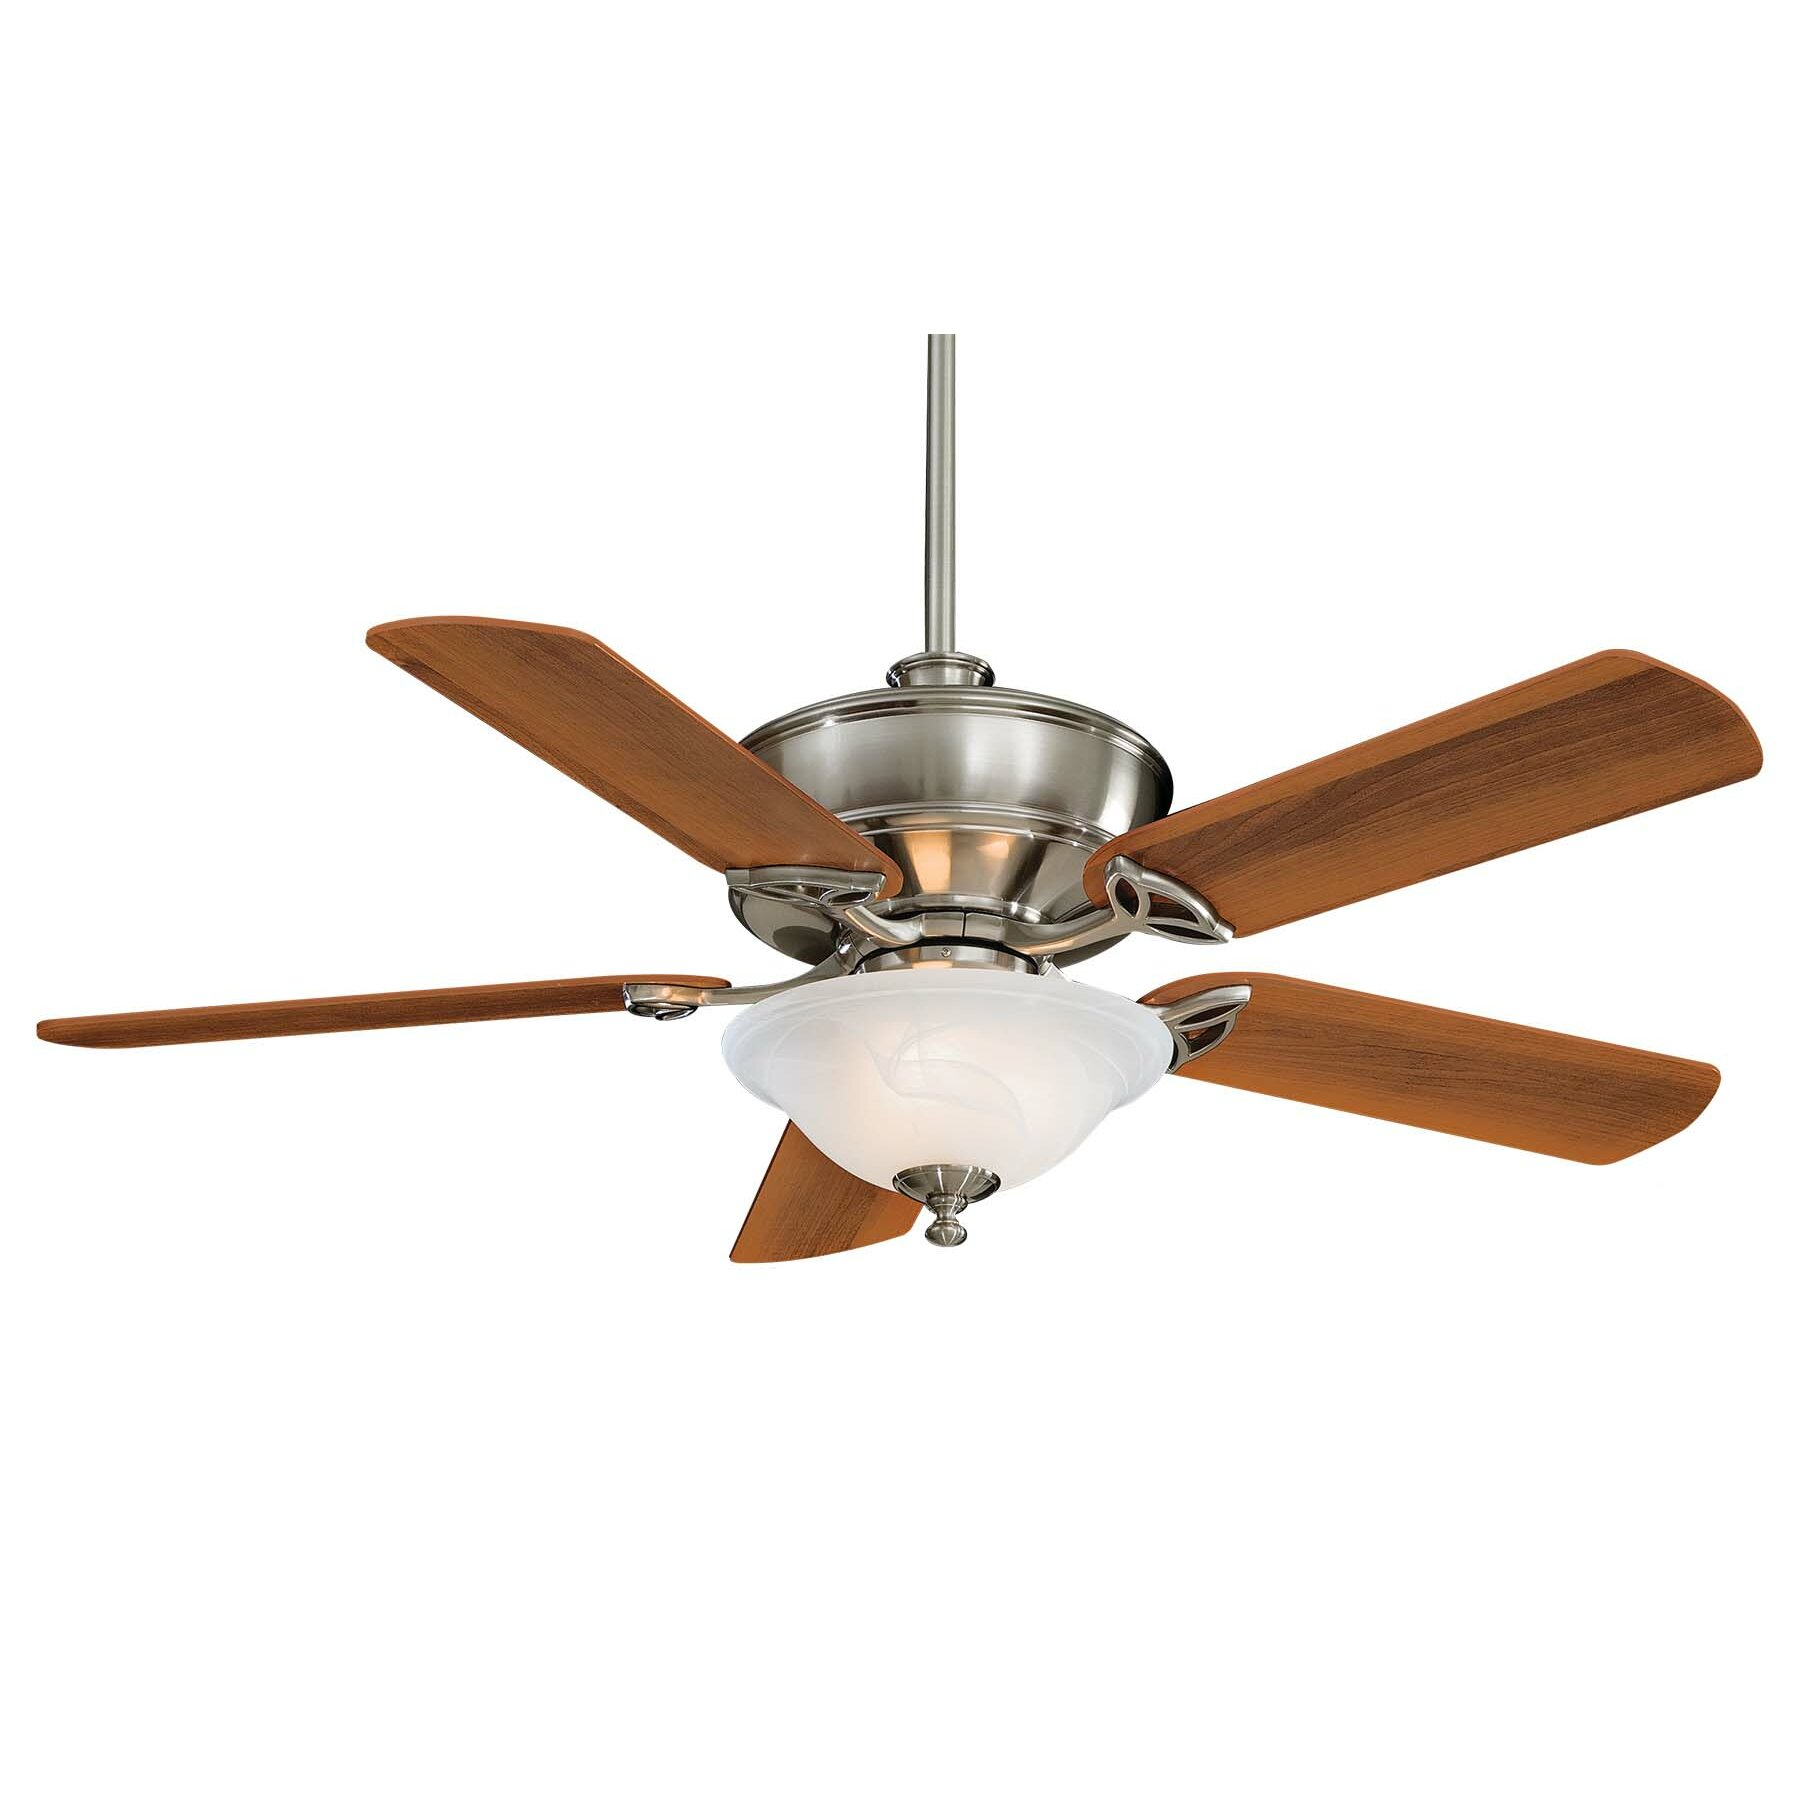 Minka Aire 52 Bolo 5 Blade Ceiling Fan with Remote